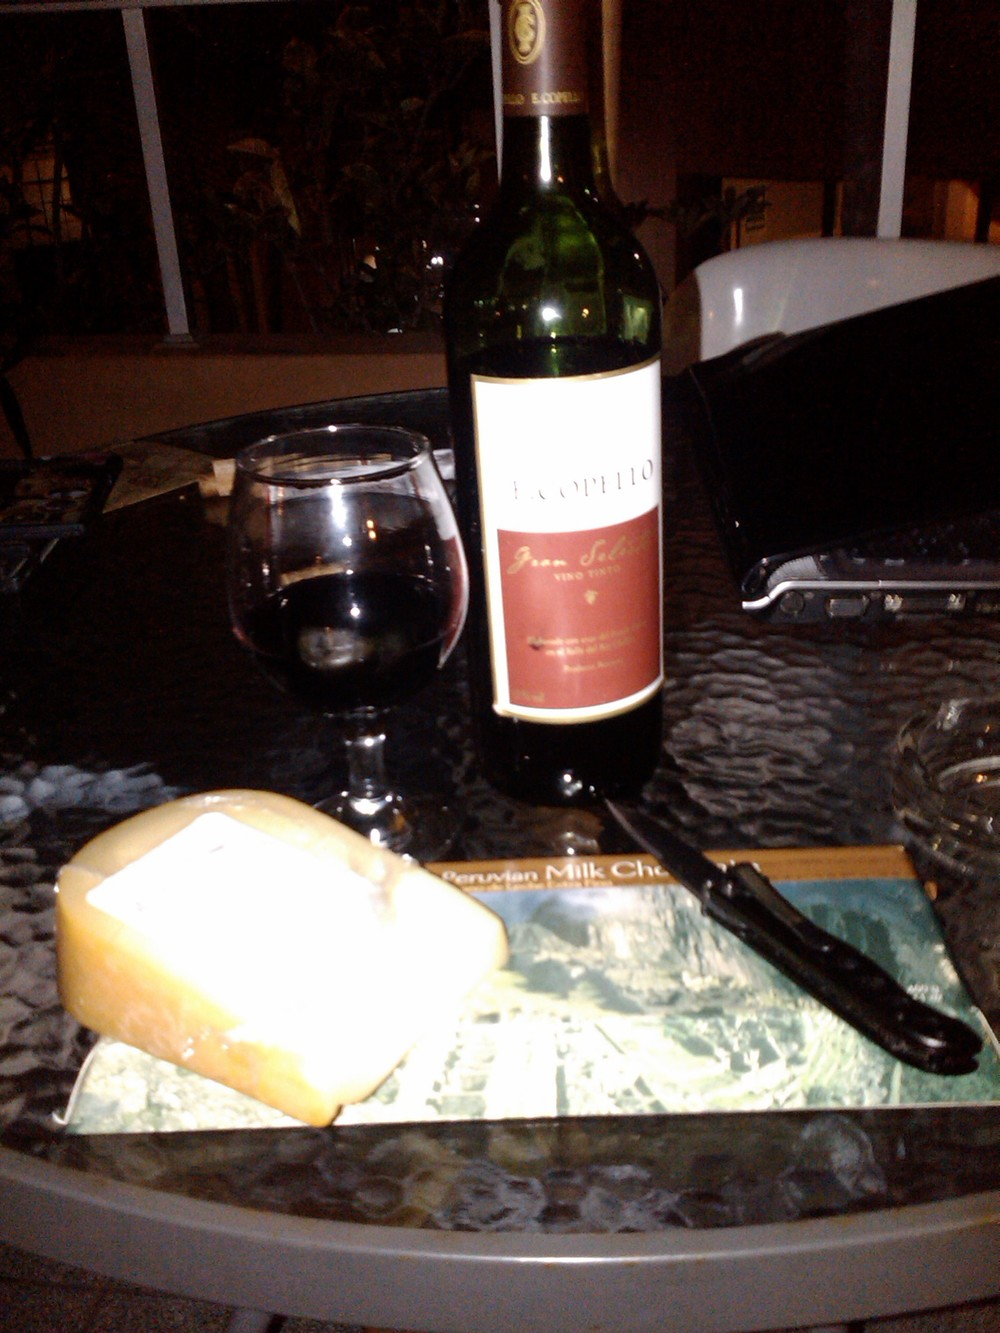 It can be good to unwind with some wine, cheese, chocolate, Cuban cigars and good fellowship